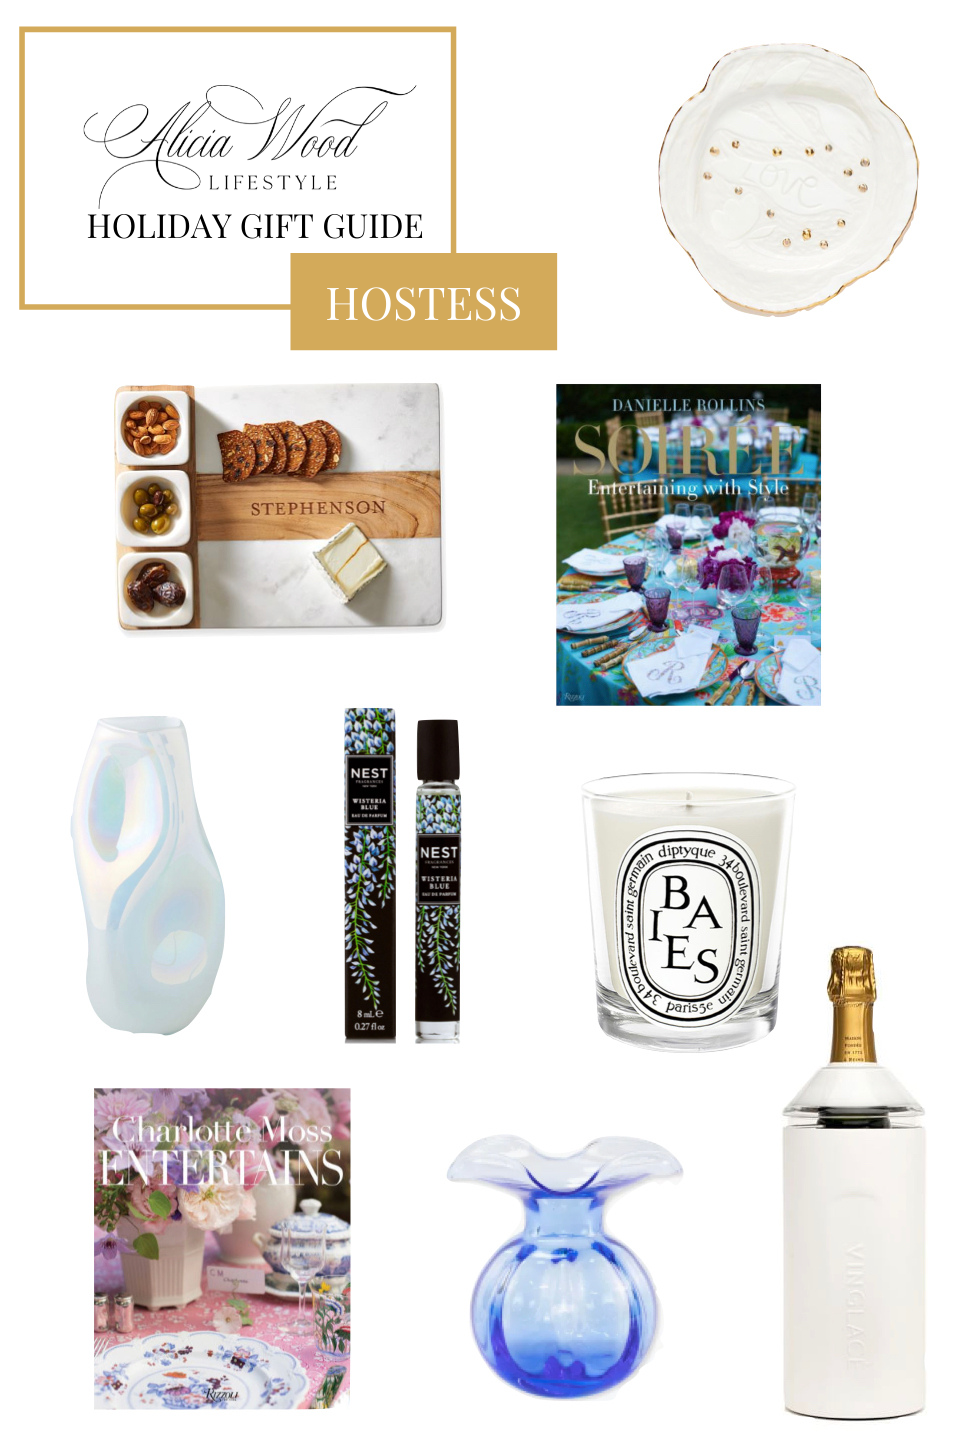 Best Hostess Gifts Alicia Wood Lifestyle